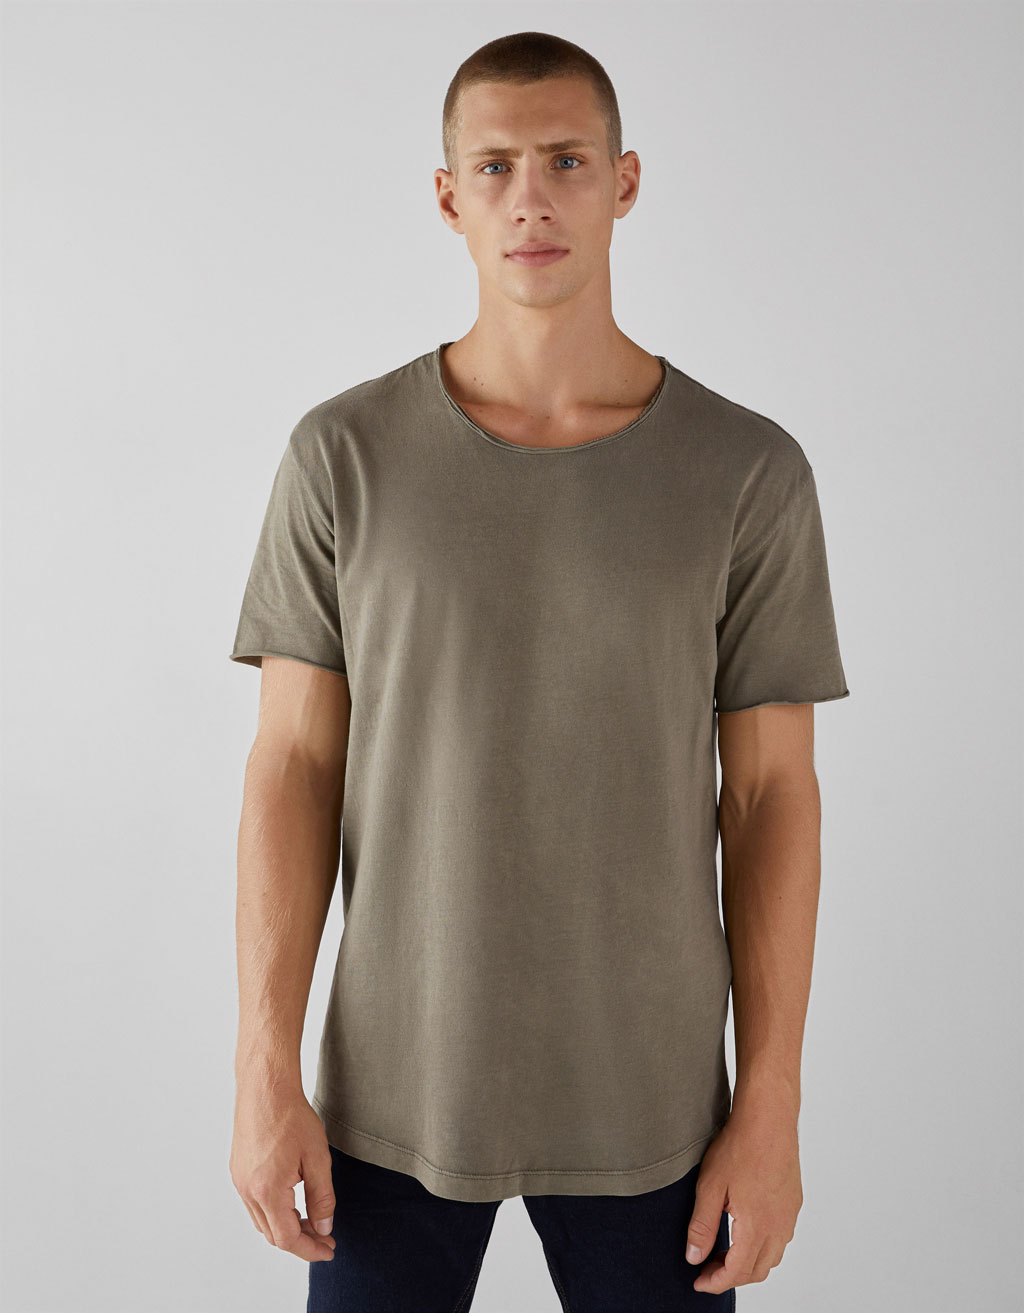 Plain T-shirt with a ripped neck